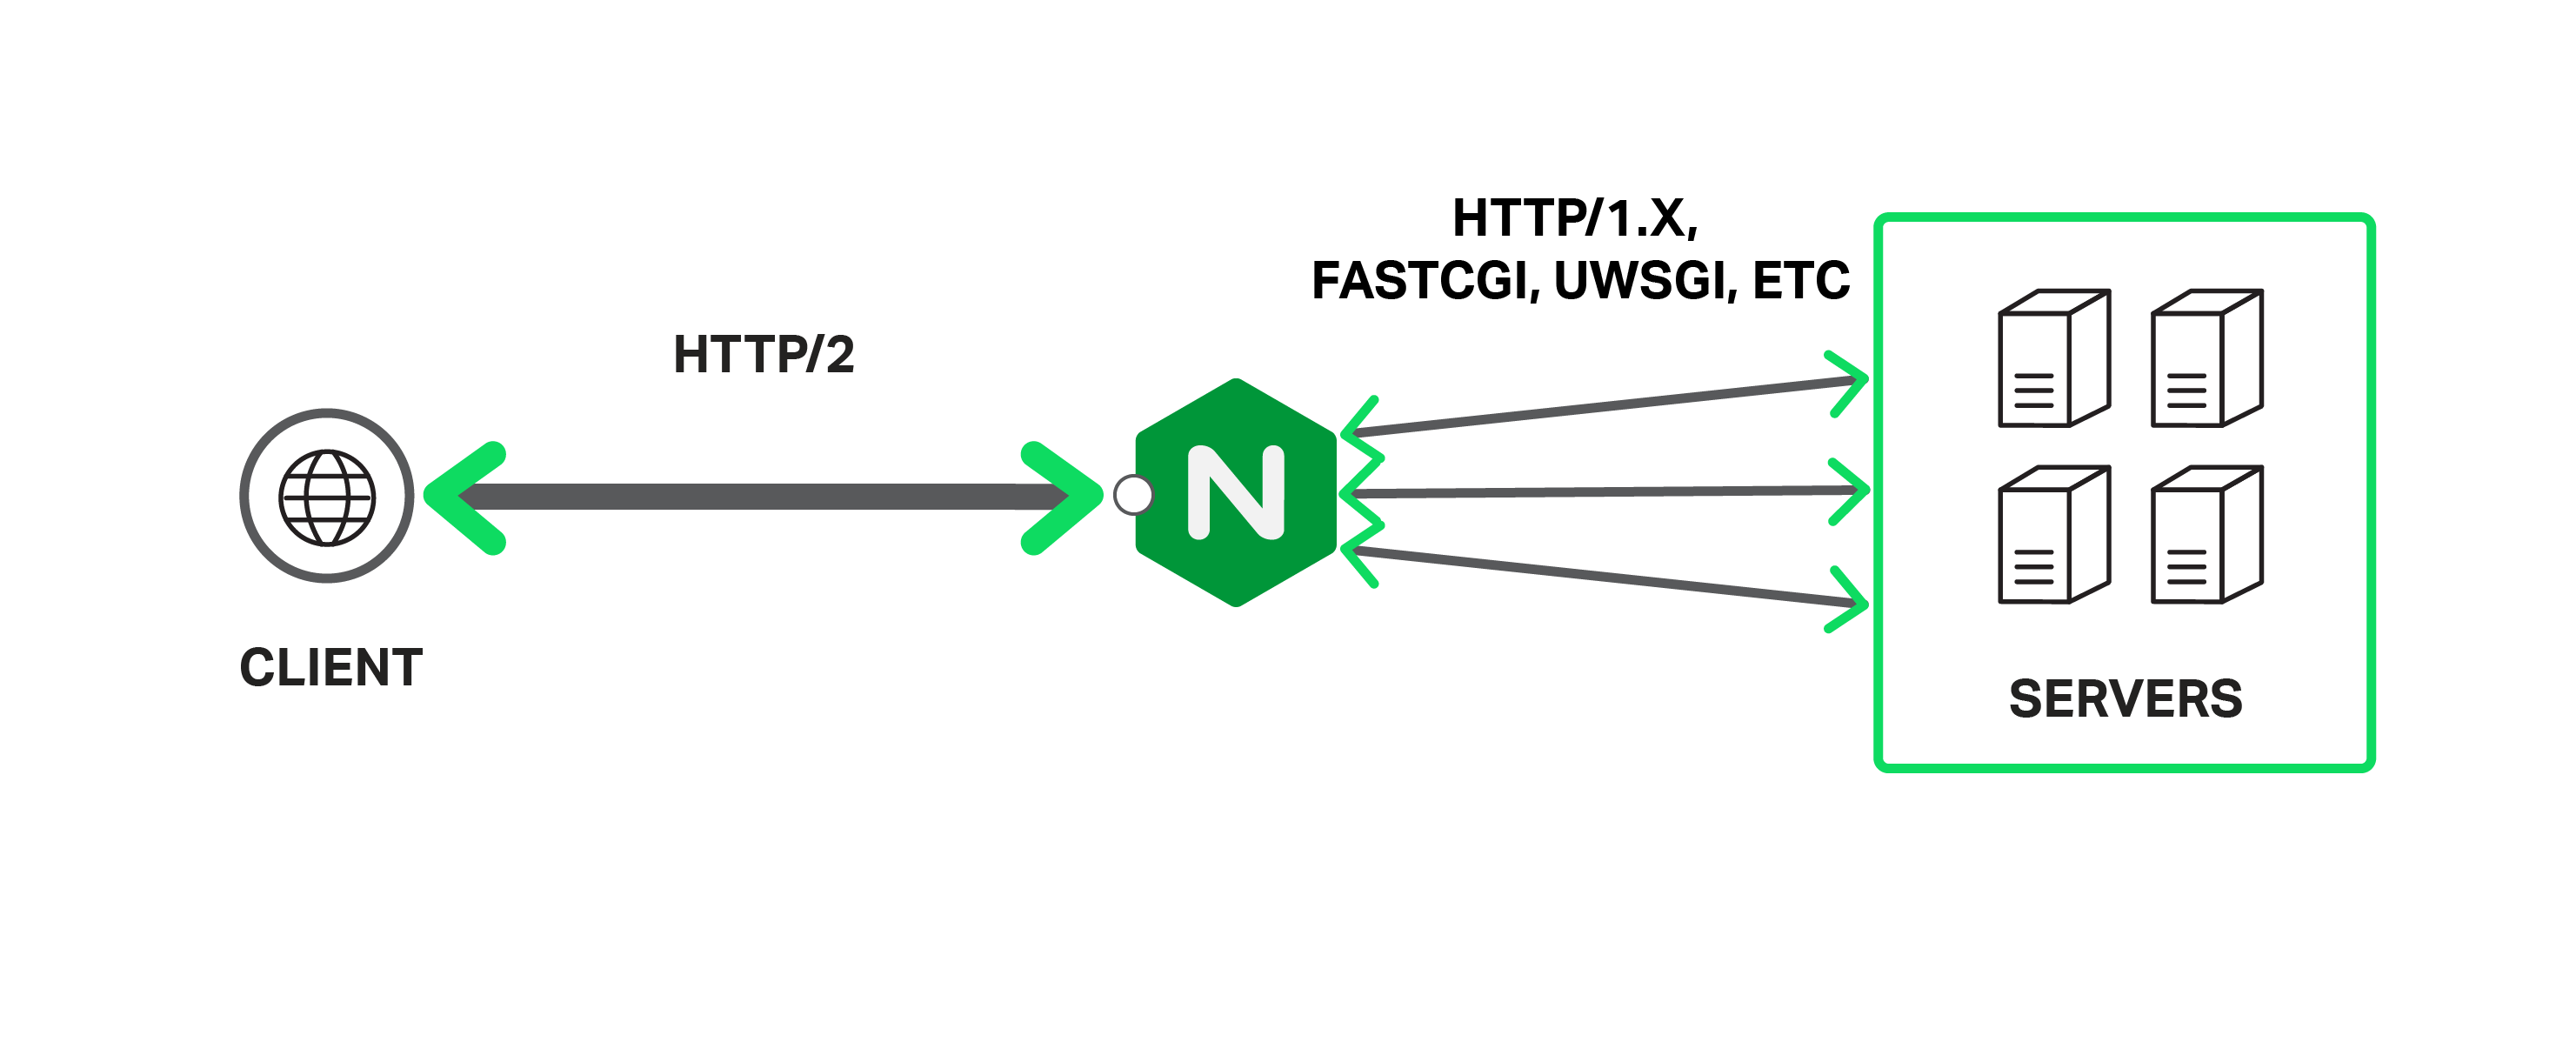 nginx redirect to https